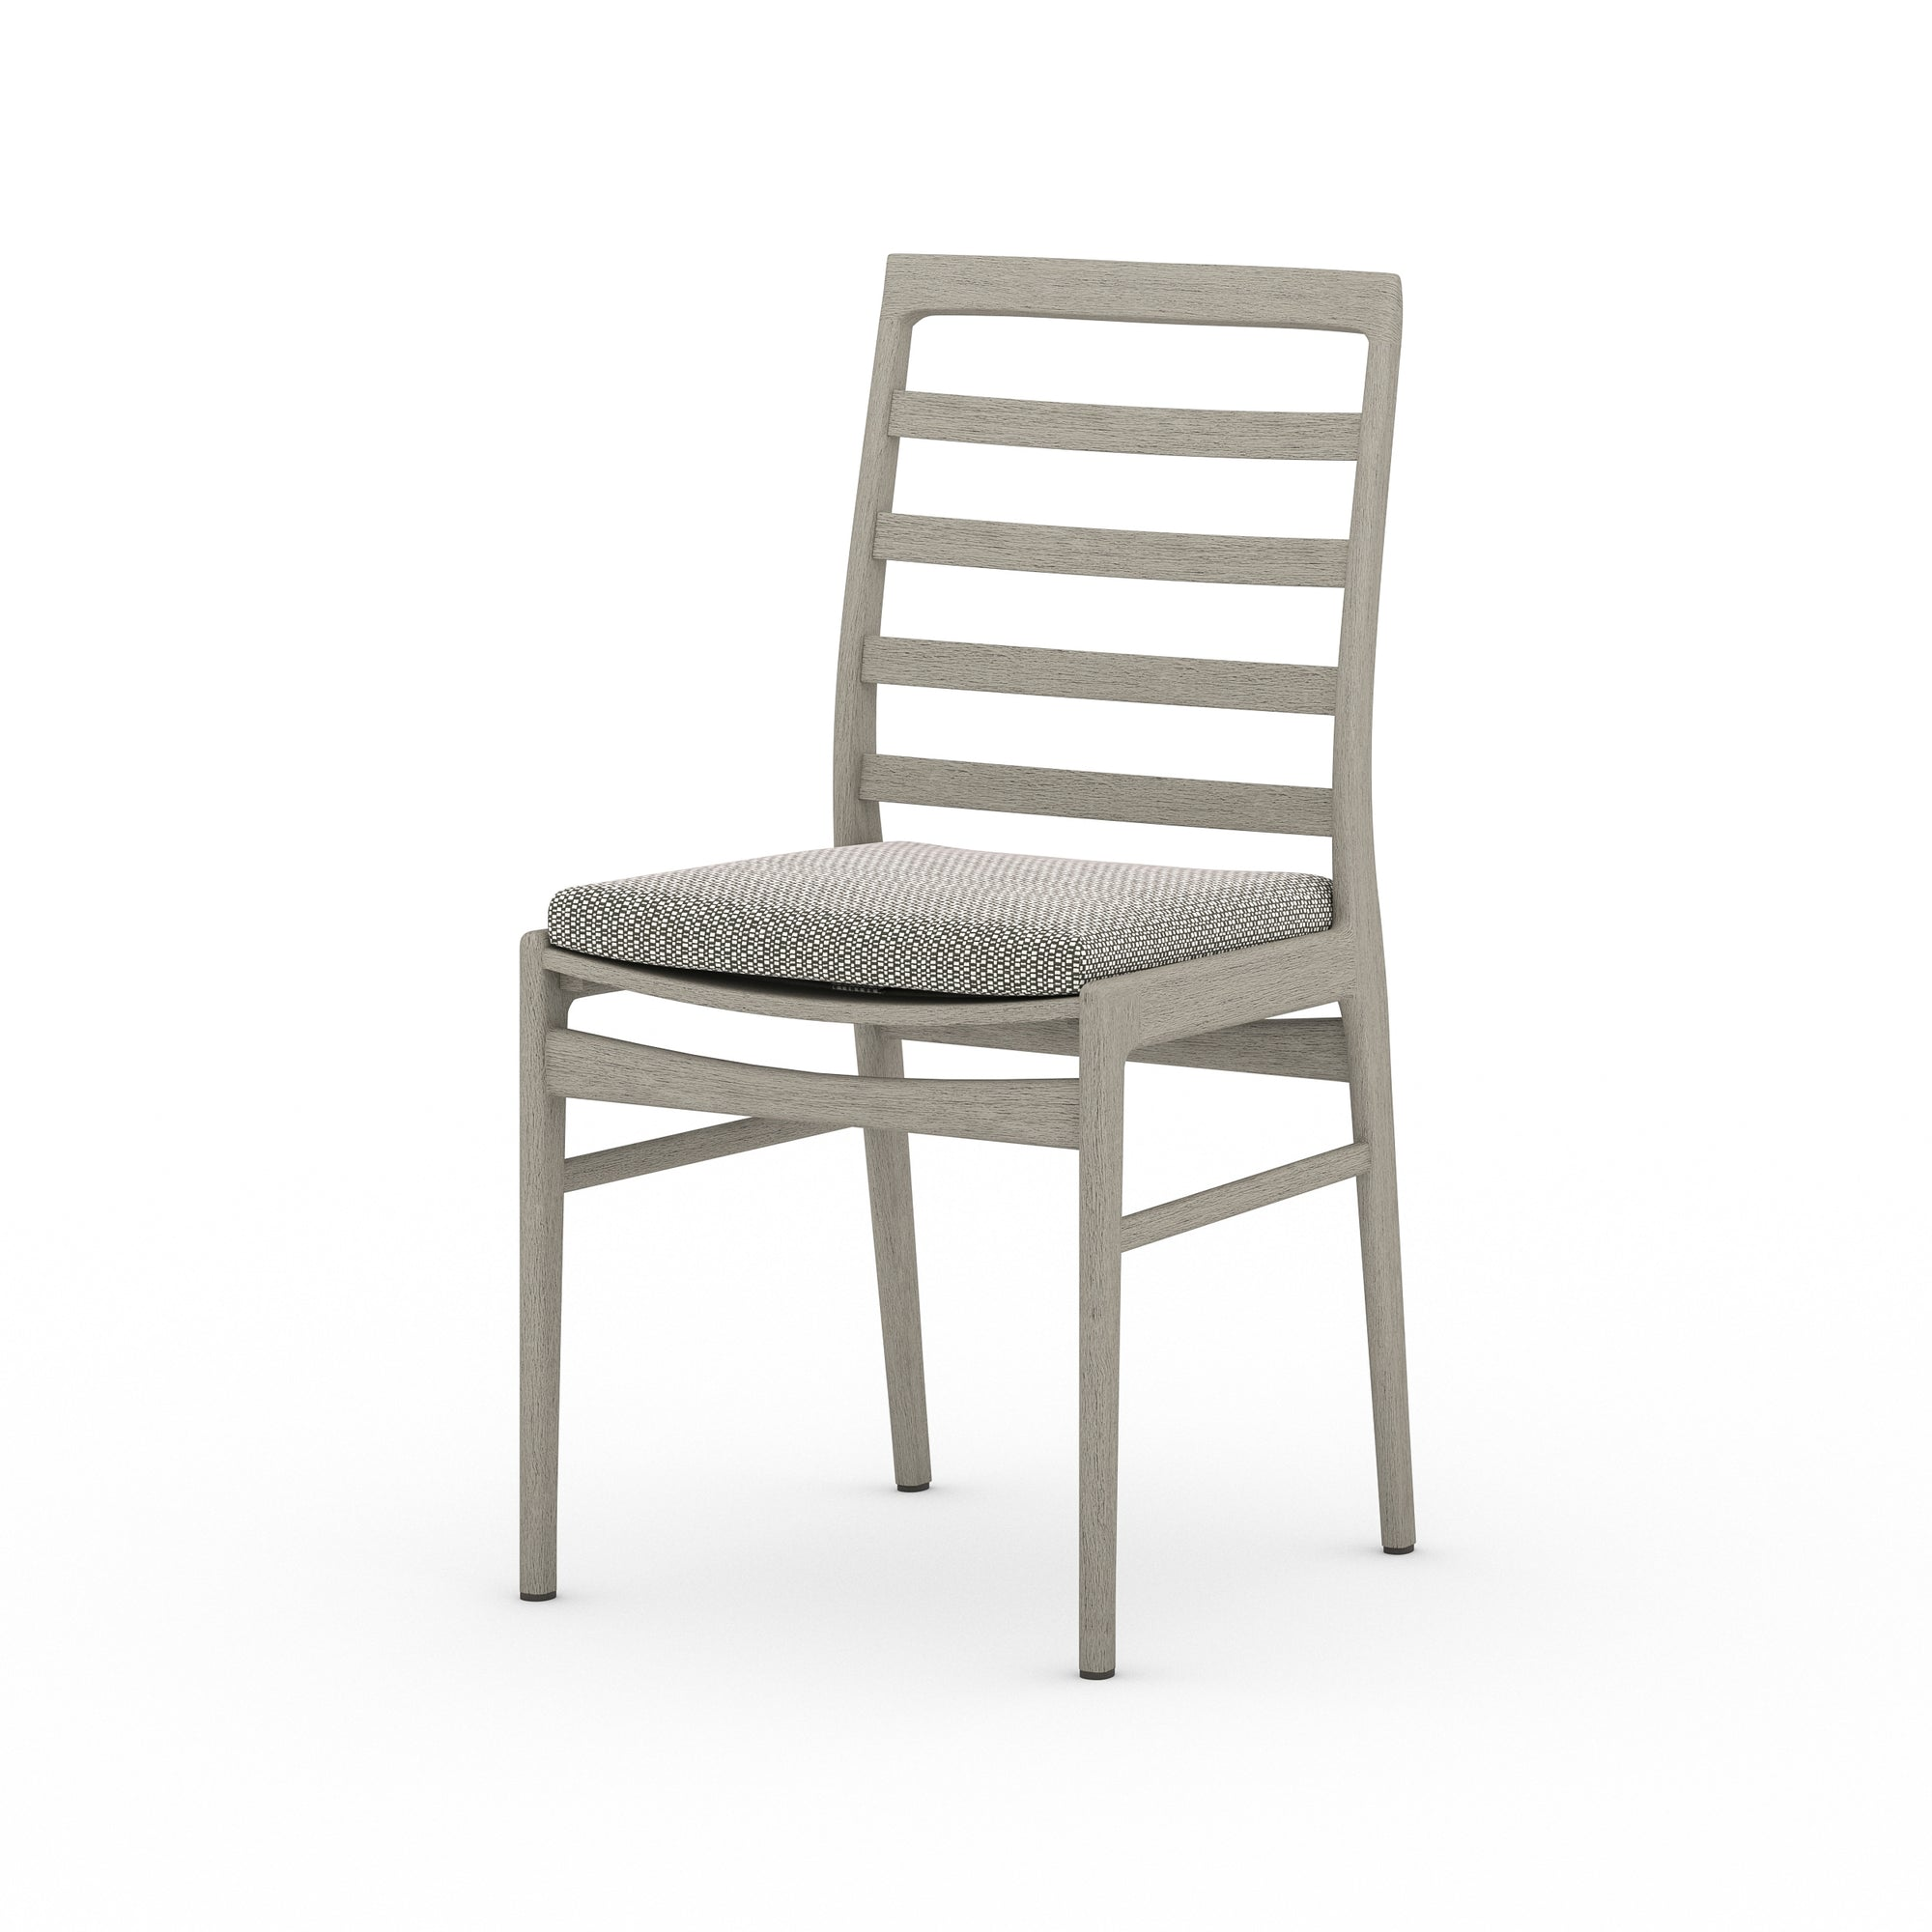 Linnet Outdoor Dining Chair - Grey/Ash